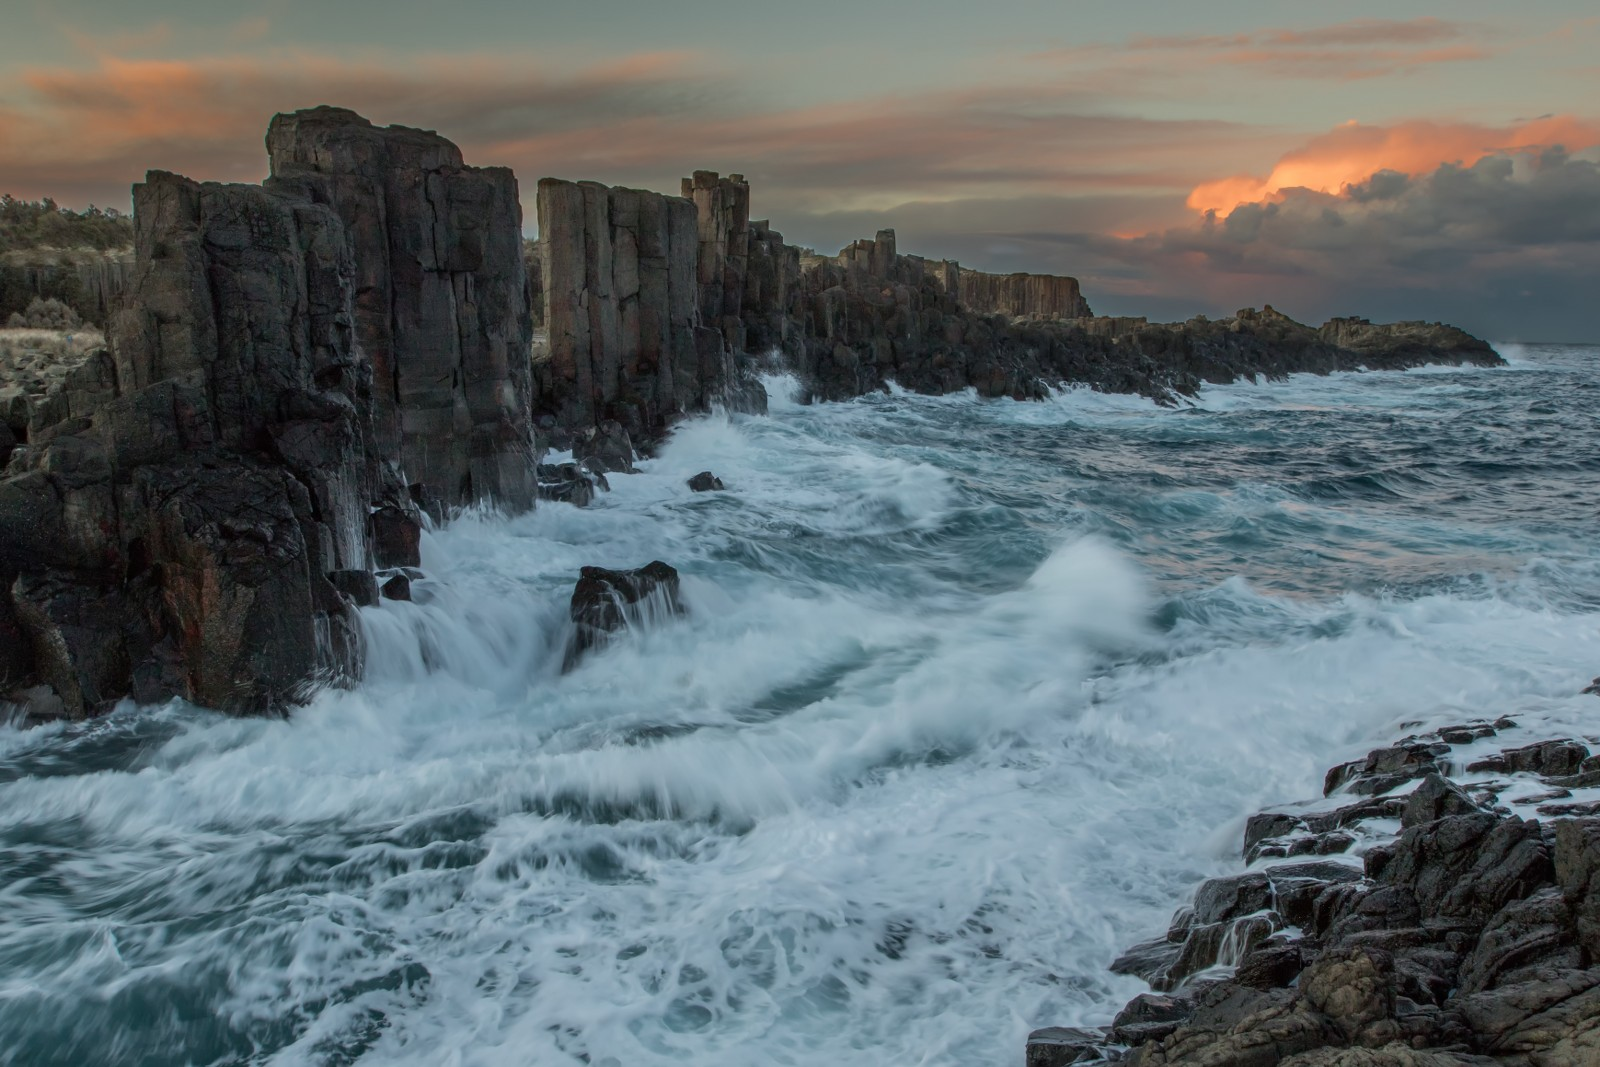 Bombo Quarry, Kiama, New South Wales, Australia